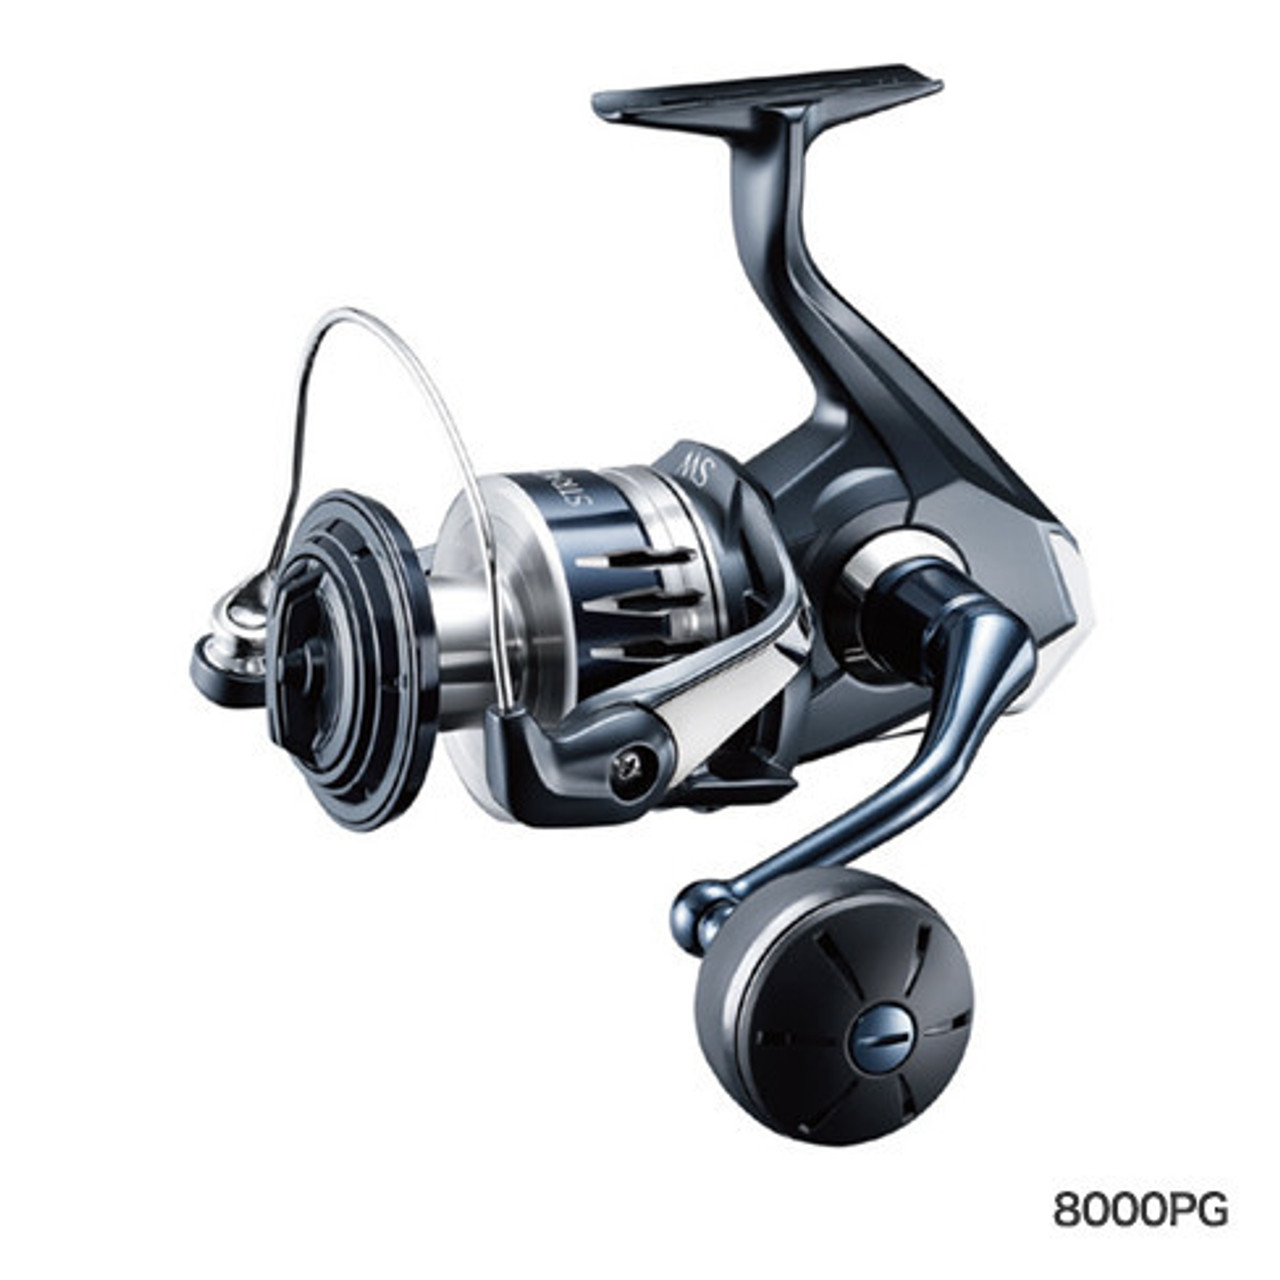 Power-oriented jigging model  By making it low gear, it is possible to make the jig act delicately. If you want to pull out one more in the threaded area, this model. Equipped with Infinity Drive for more powerful winding.  [Reference target fish / fishing species] Power, winding-oriented jigging (yellowtail, amberjack), etc.